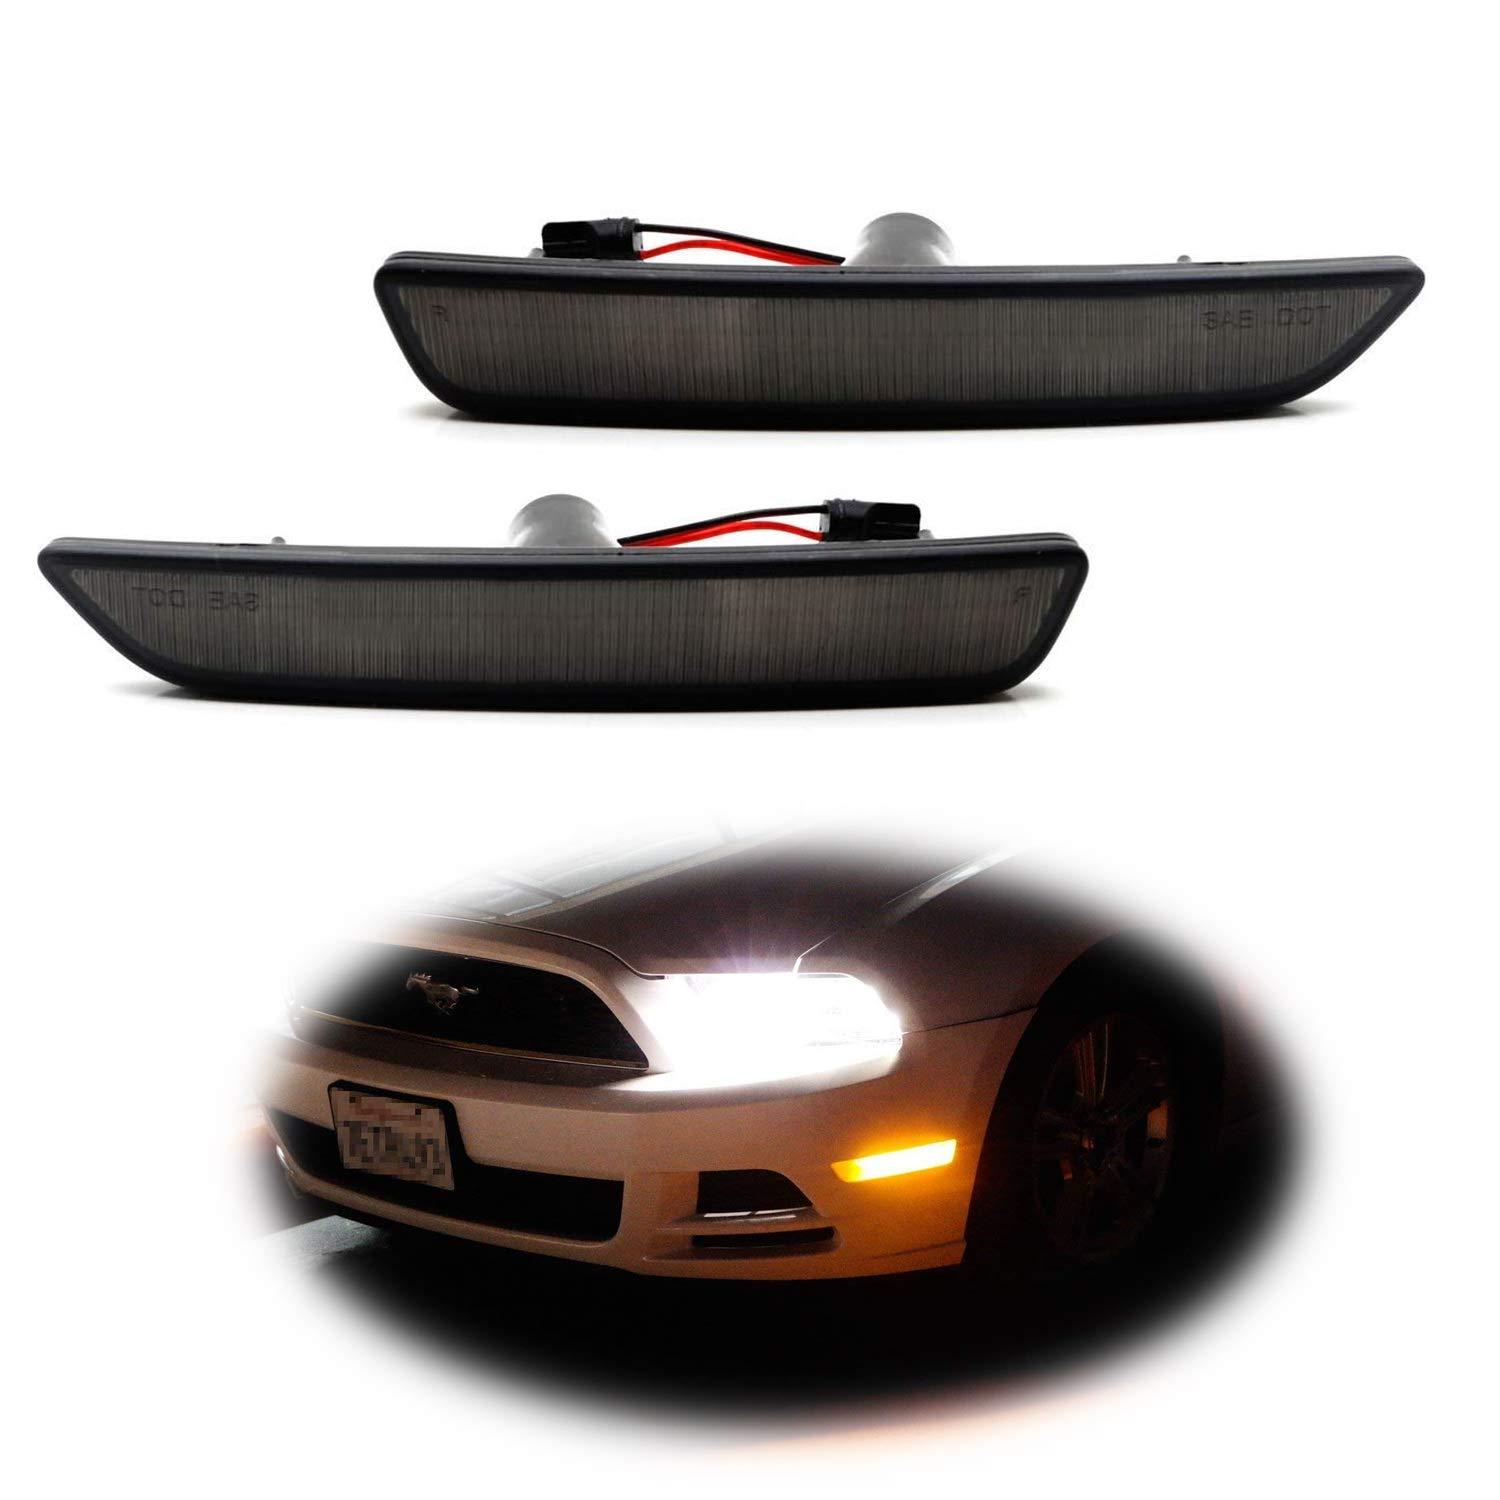 iJDMTOY Smoked Lens Red Full LED Rear Side Marker Light Kit For 2015-up Ford Mustang, Powered by 48-SMD LED, Replace OEM Back Sidemarker Lamps iJDMTOY Auto Accessories Change Left/Right Original Lamp Assembly